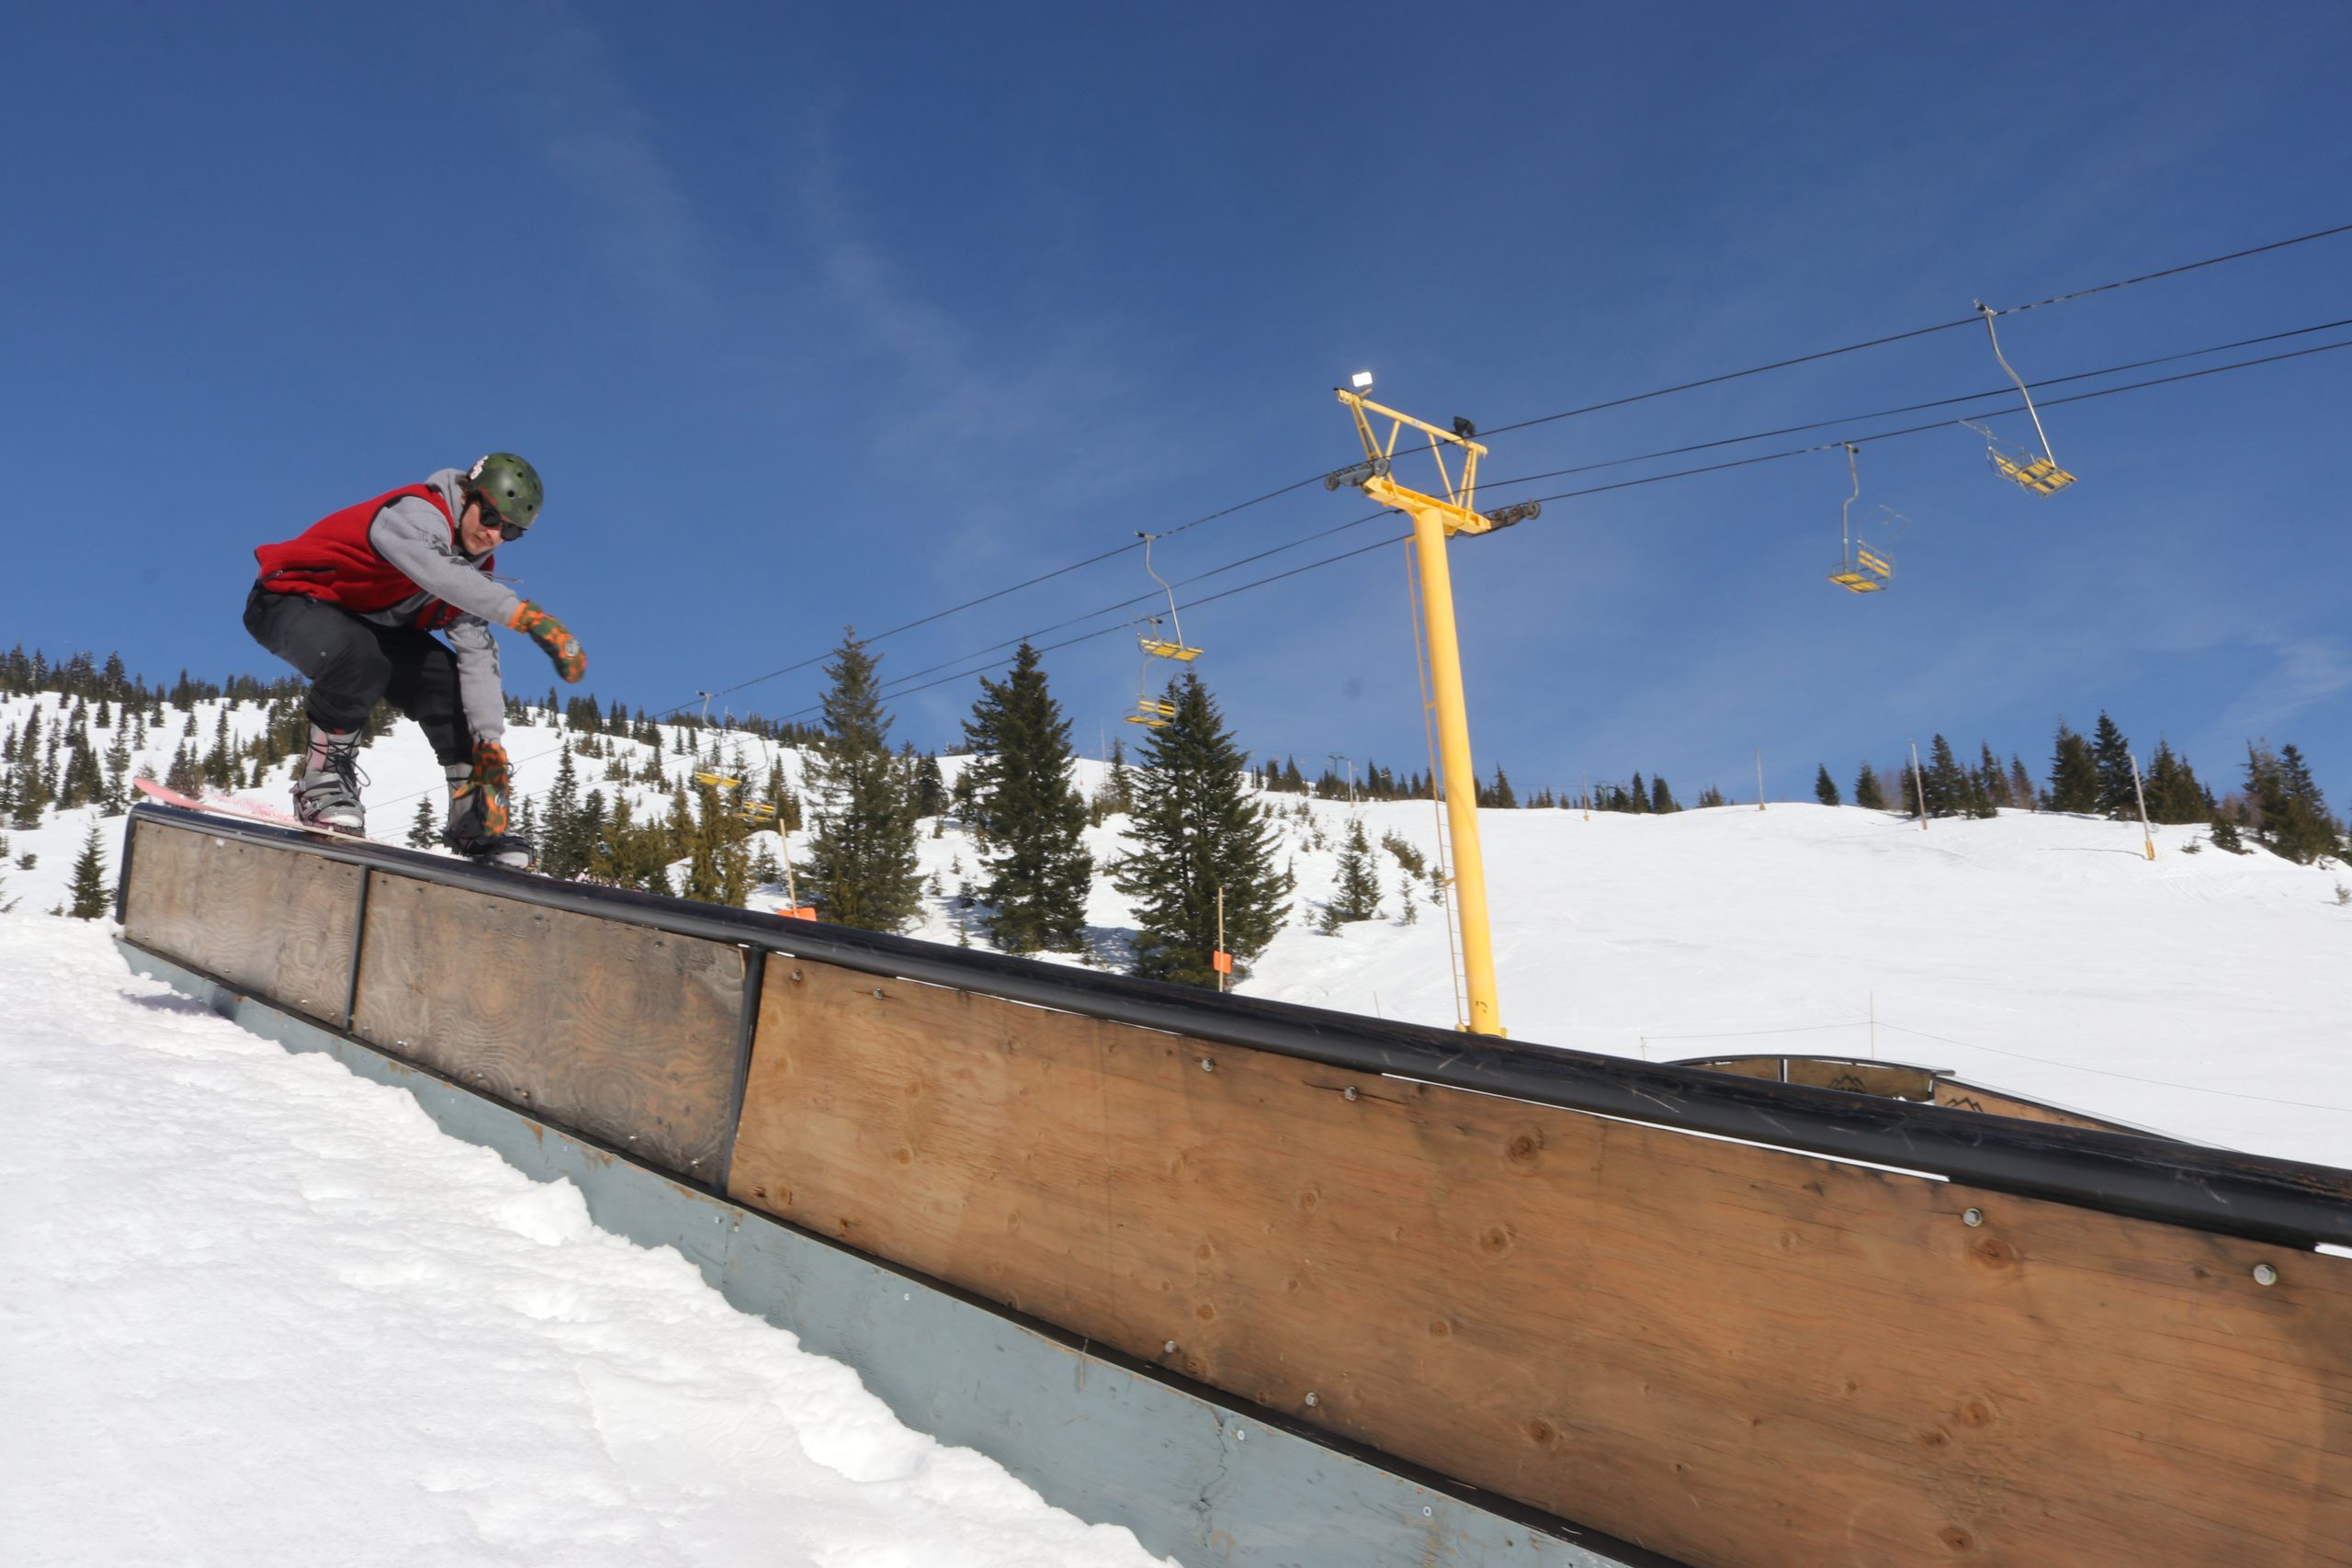 A man on a snowboard hitting a rail in Whistle Park at Sasquatch Mountain